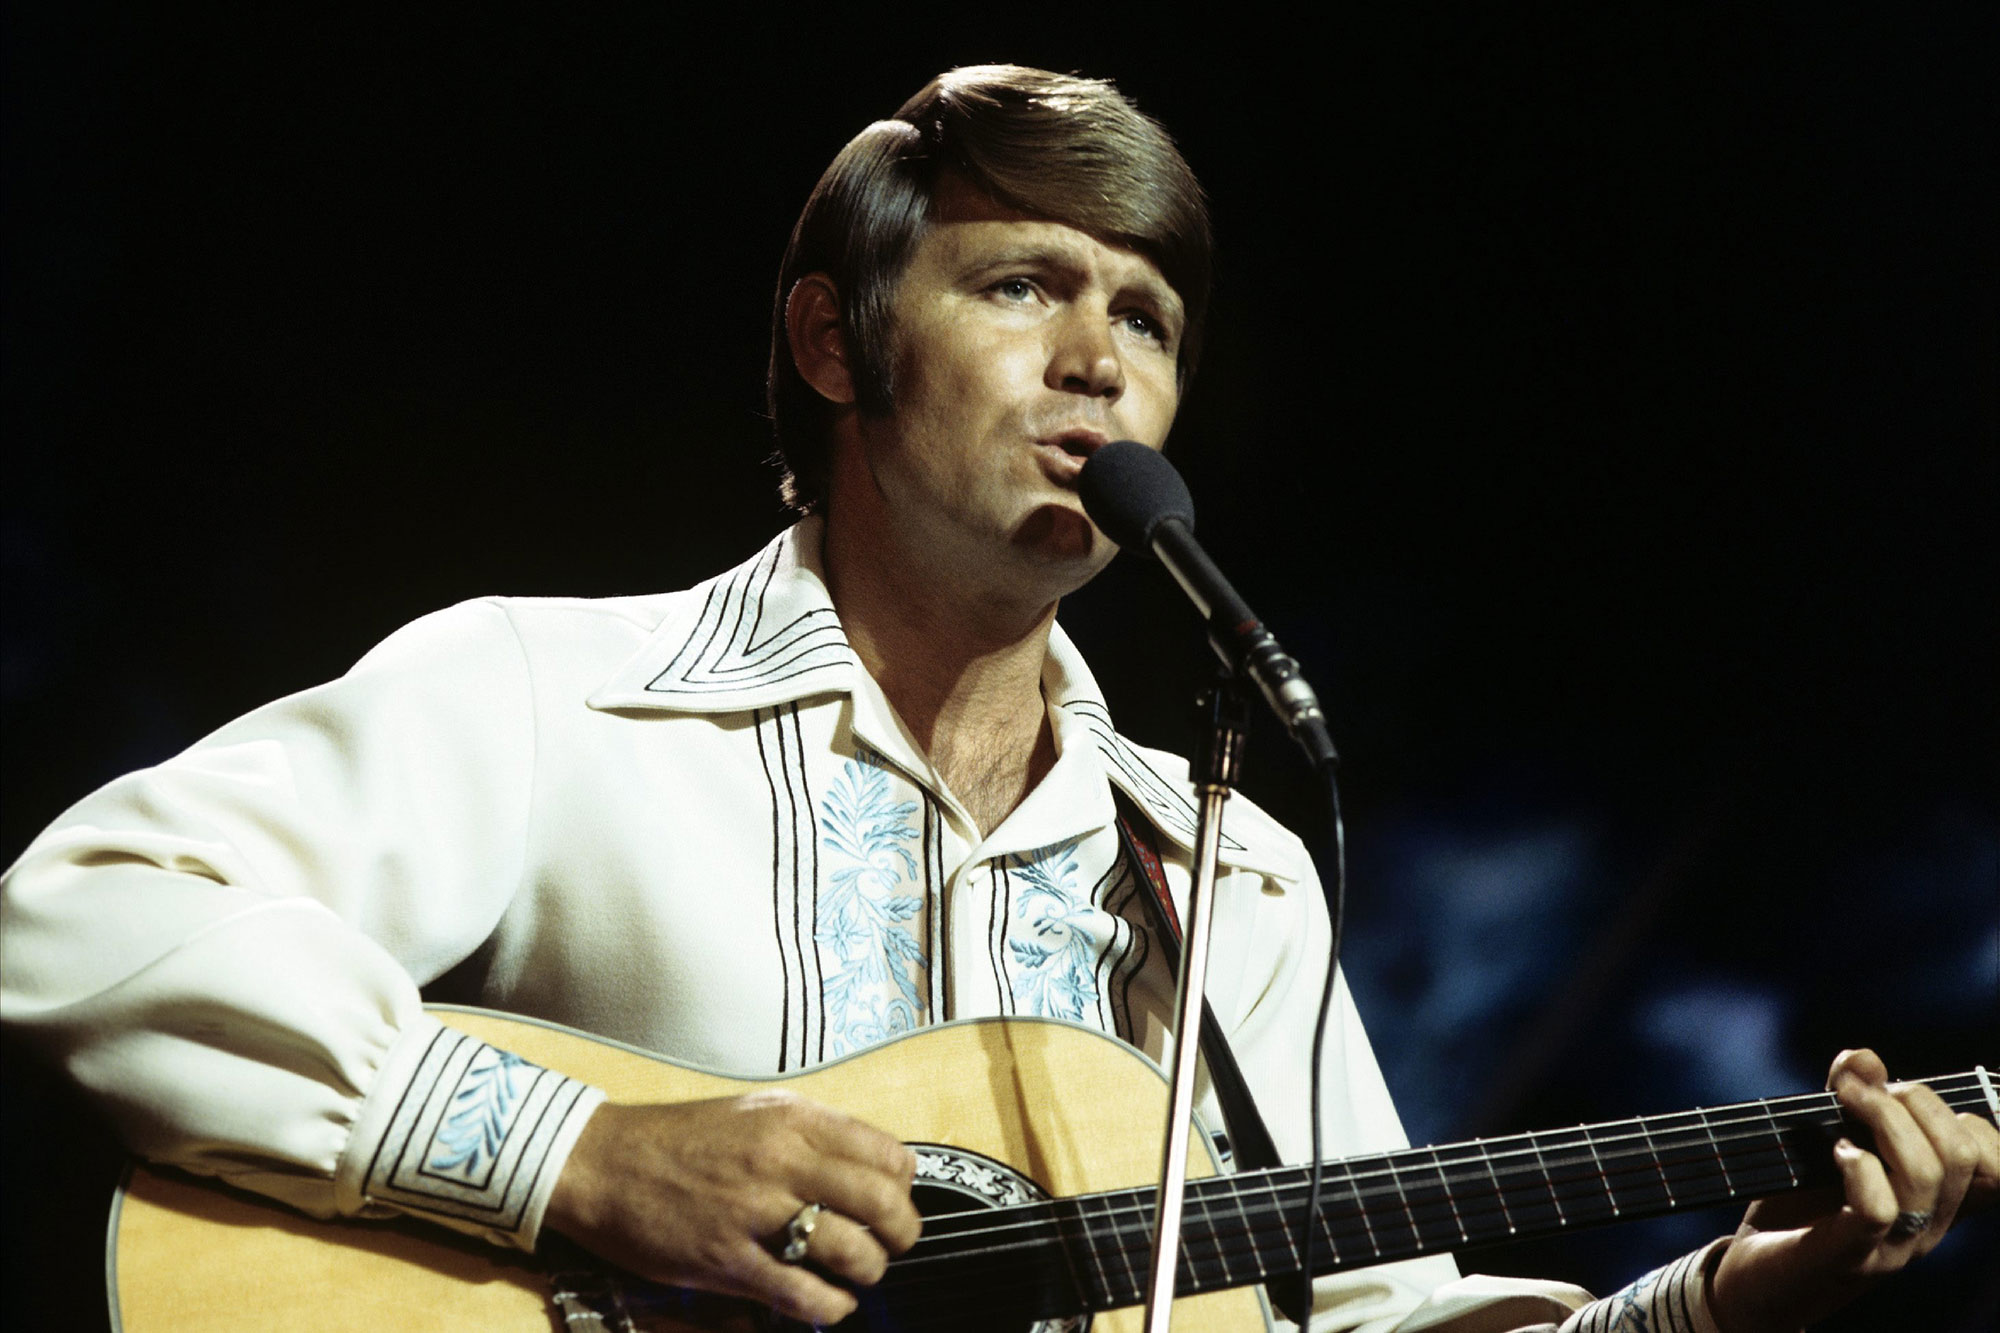 Glen Campbell's 'galveston' 